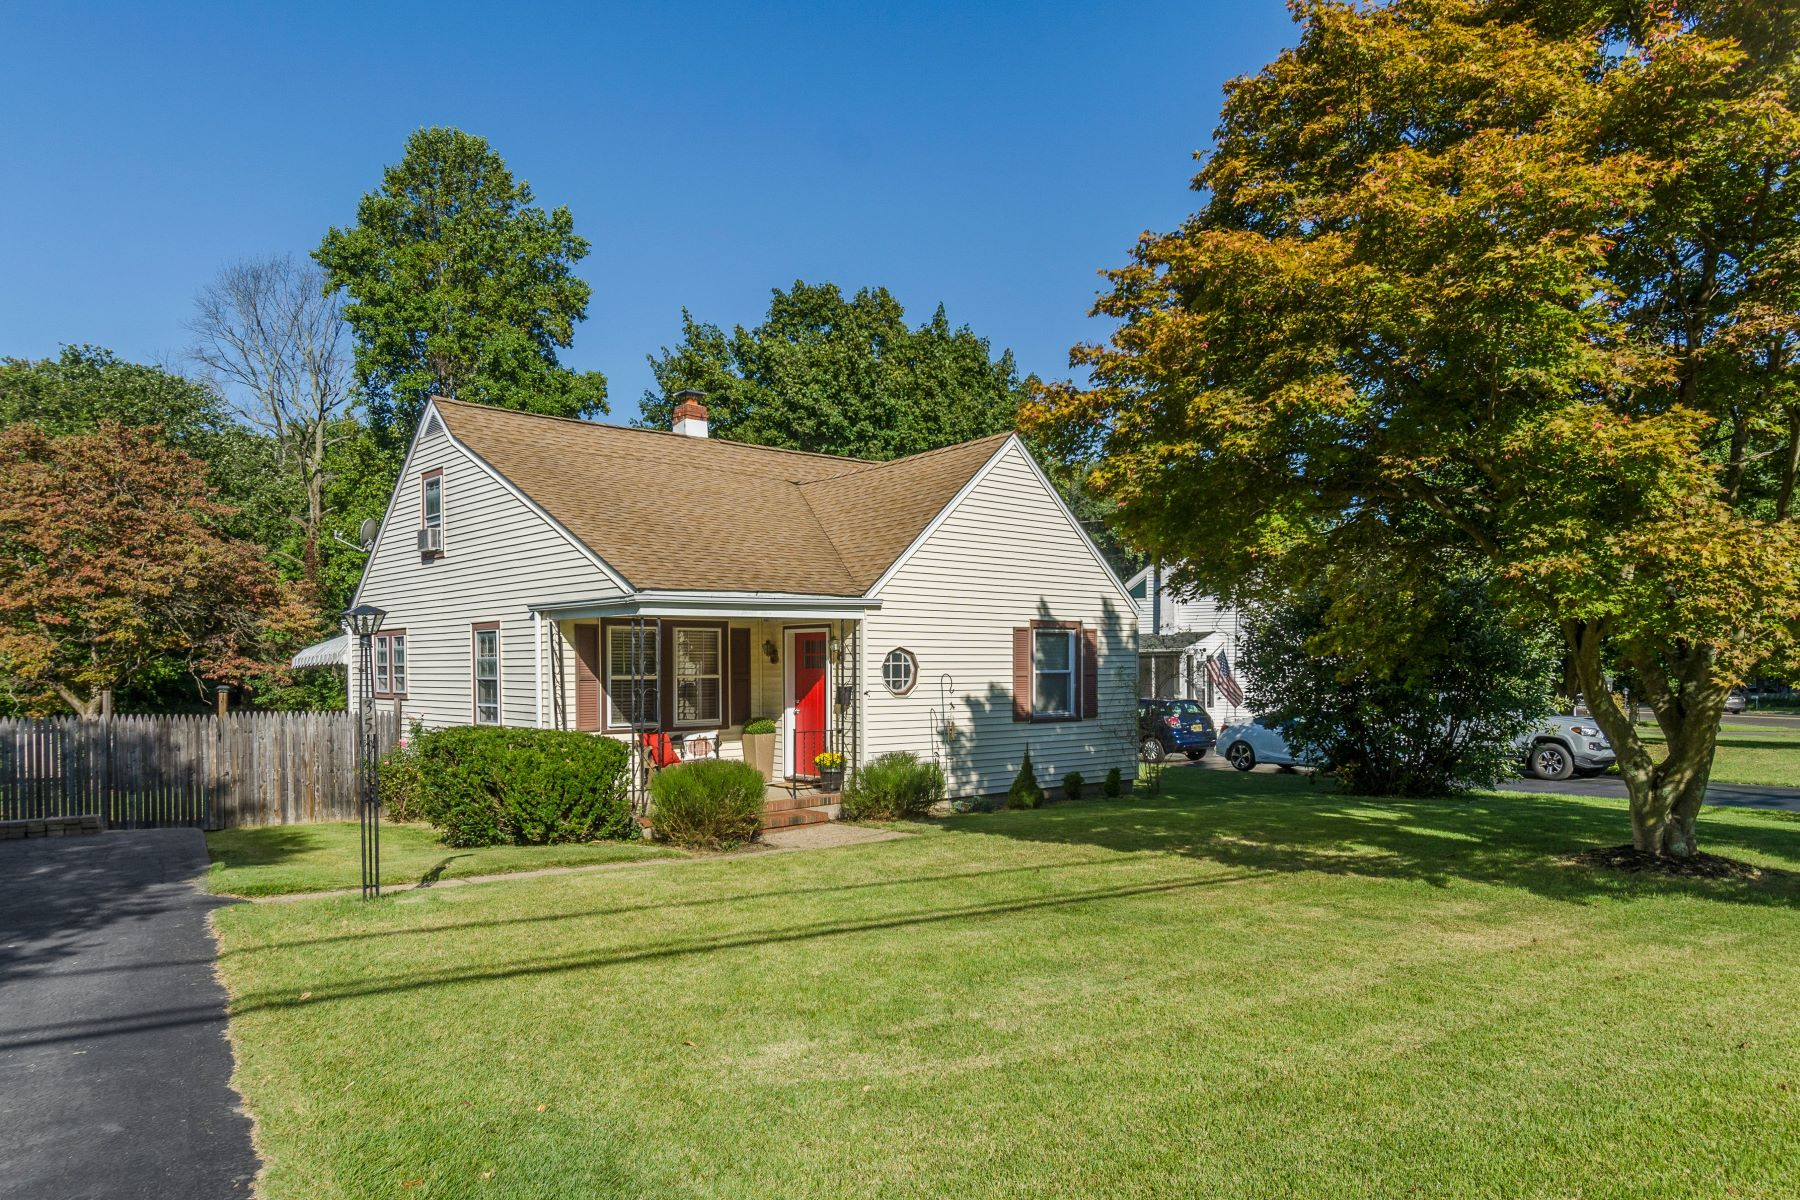 Single Family Homes for Sale at Charming Cape on spacious lot backing woodlands 35 Norcross Circle Hamilton Township, New Jersey 08619 United States